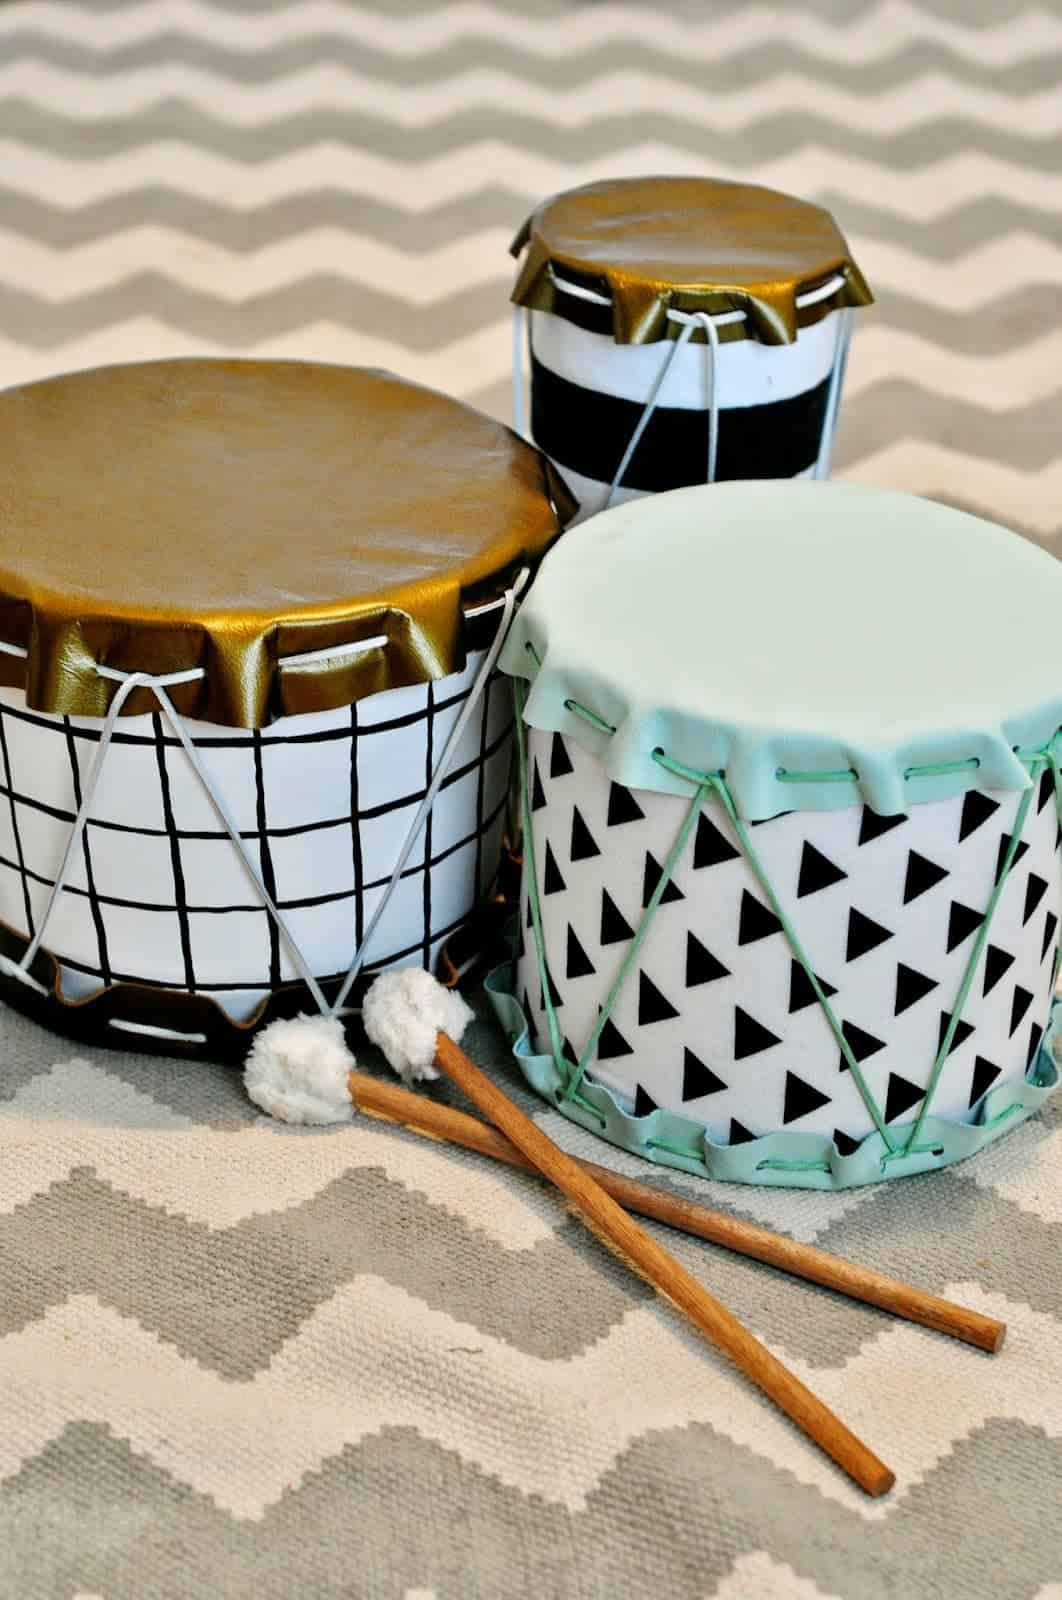 Toddler Crafts & Activities Roundup - popcorn tin or oatmeal container drum